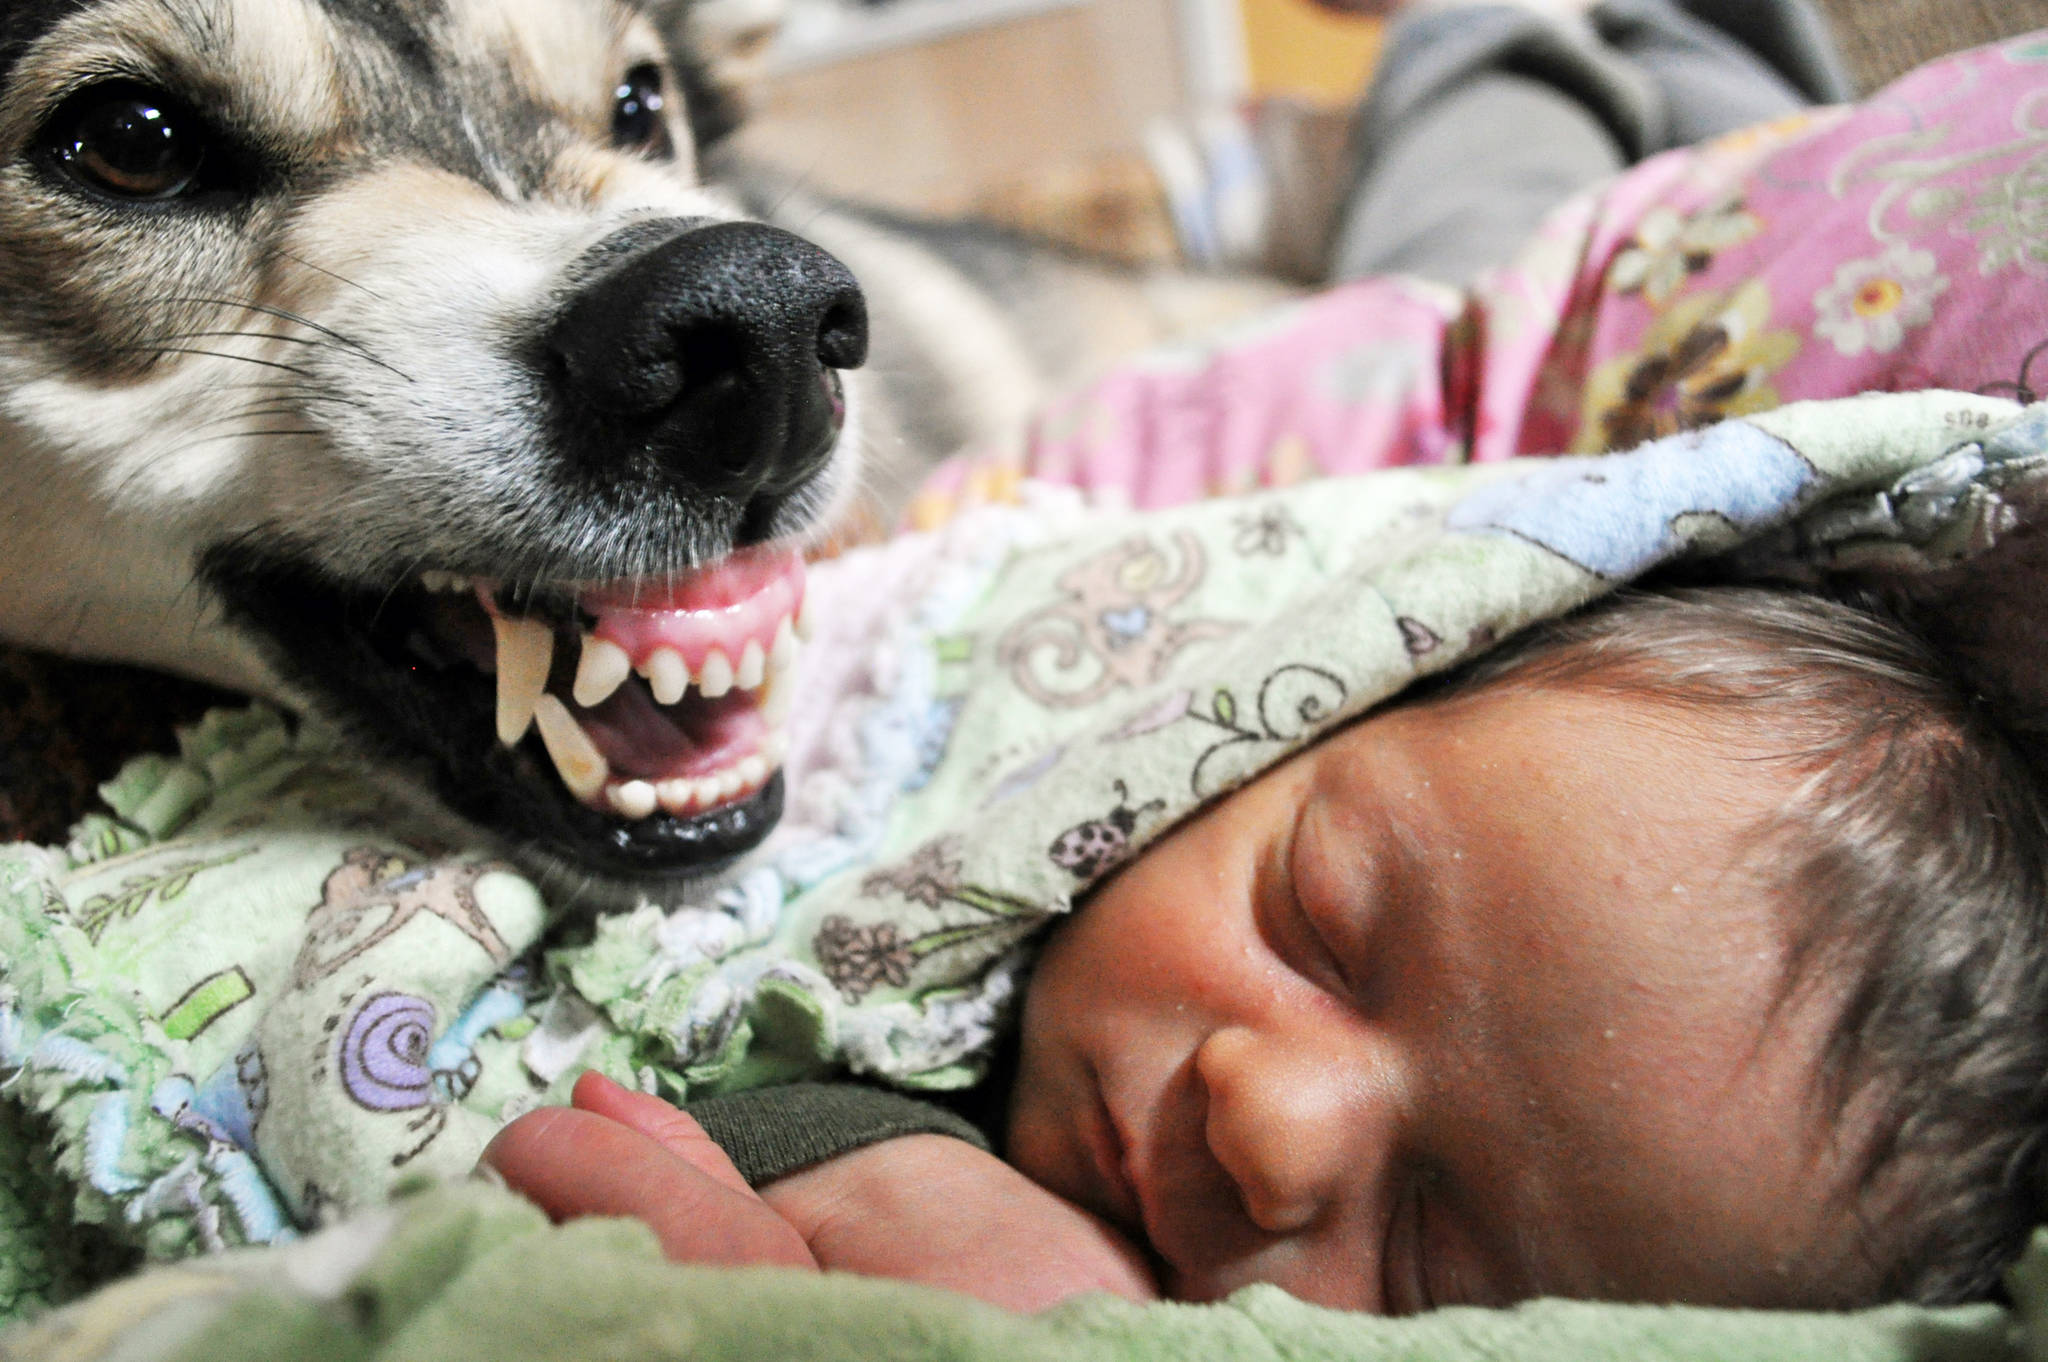 """Metoo the sled dog protects baby Lynx. The challenge of bringing home a newborn daughter to a life with 40 dogs is just one of the stories shared in """"Life with Forty Dogs,"""" by Kasilof musher Joseph Robertia, which came out Tuesday, April 4, 2017. (Photo courtesy Joseph Robertia)"""